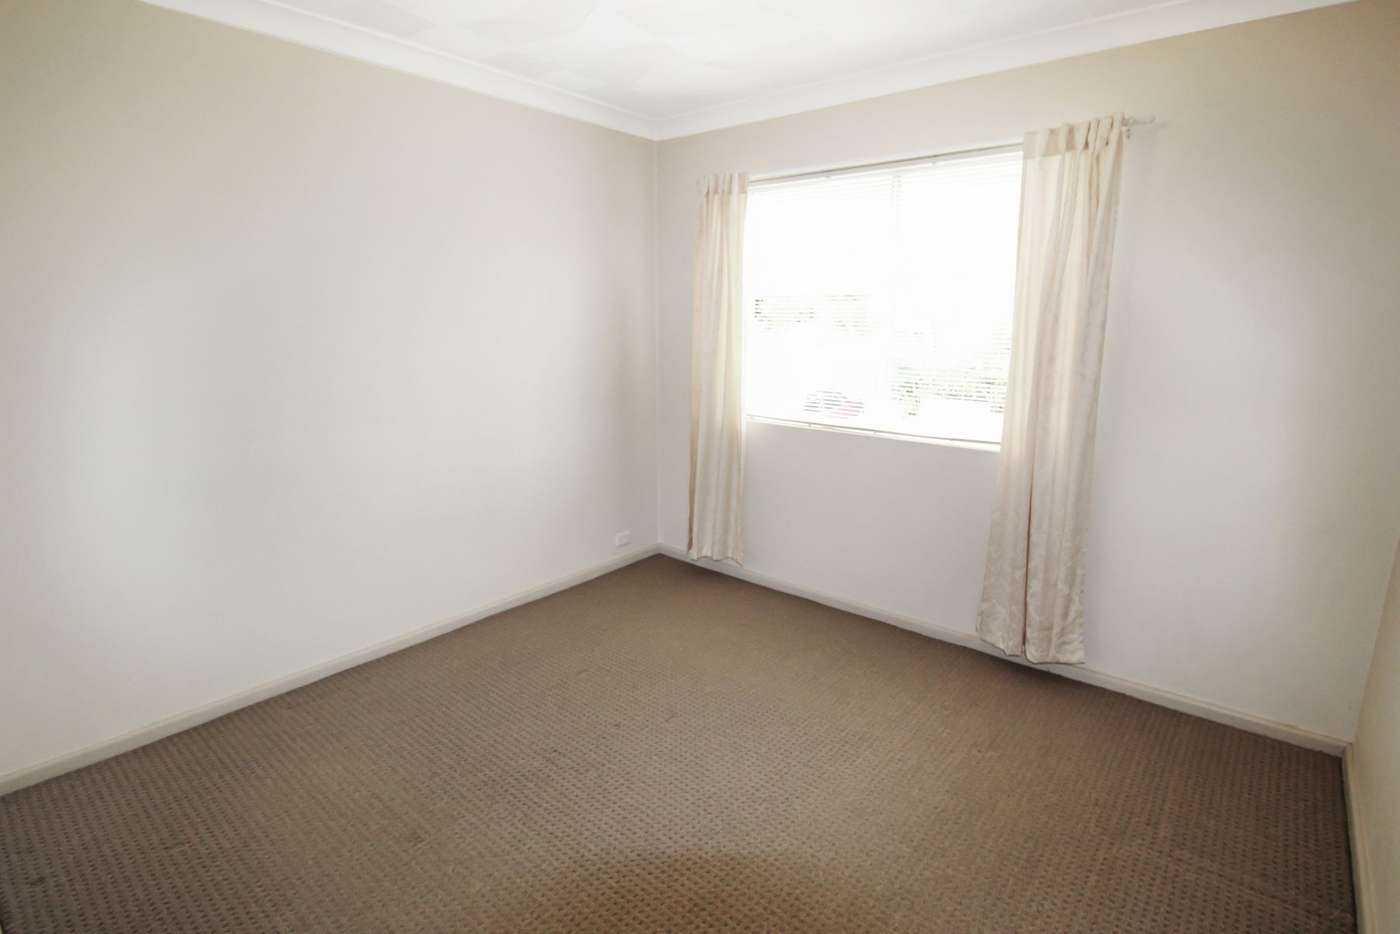 Sixth view of Homely unit listing, 8/14 Pearson Street, Gladesville NSW 2111